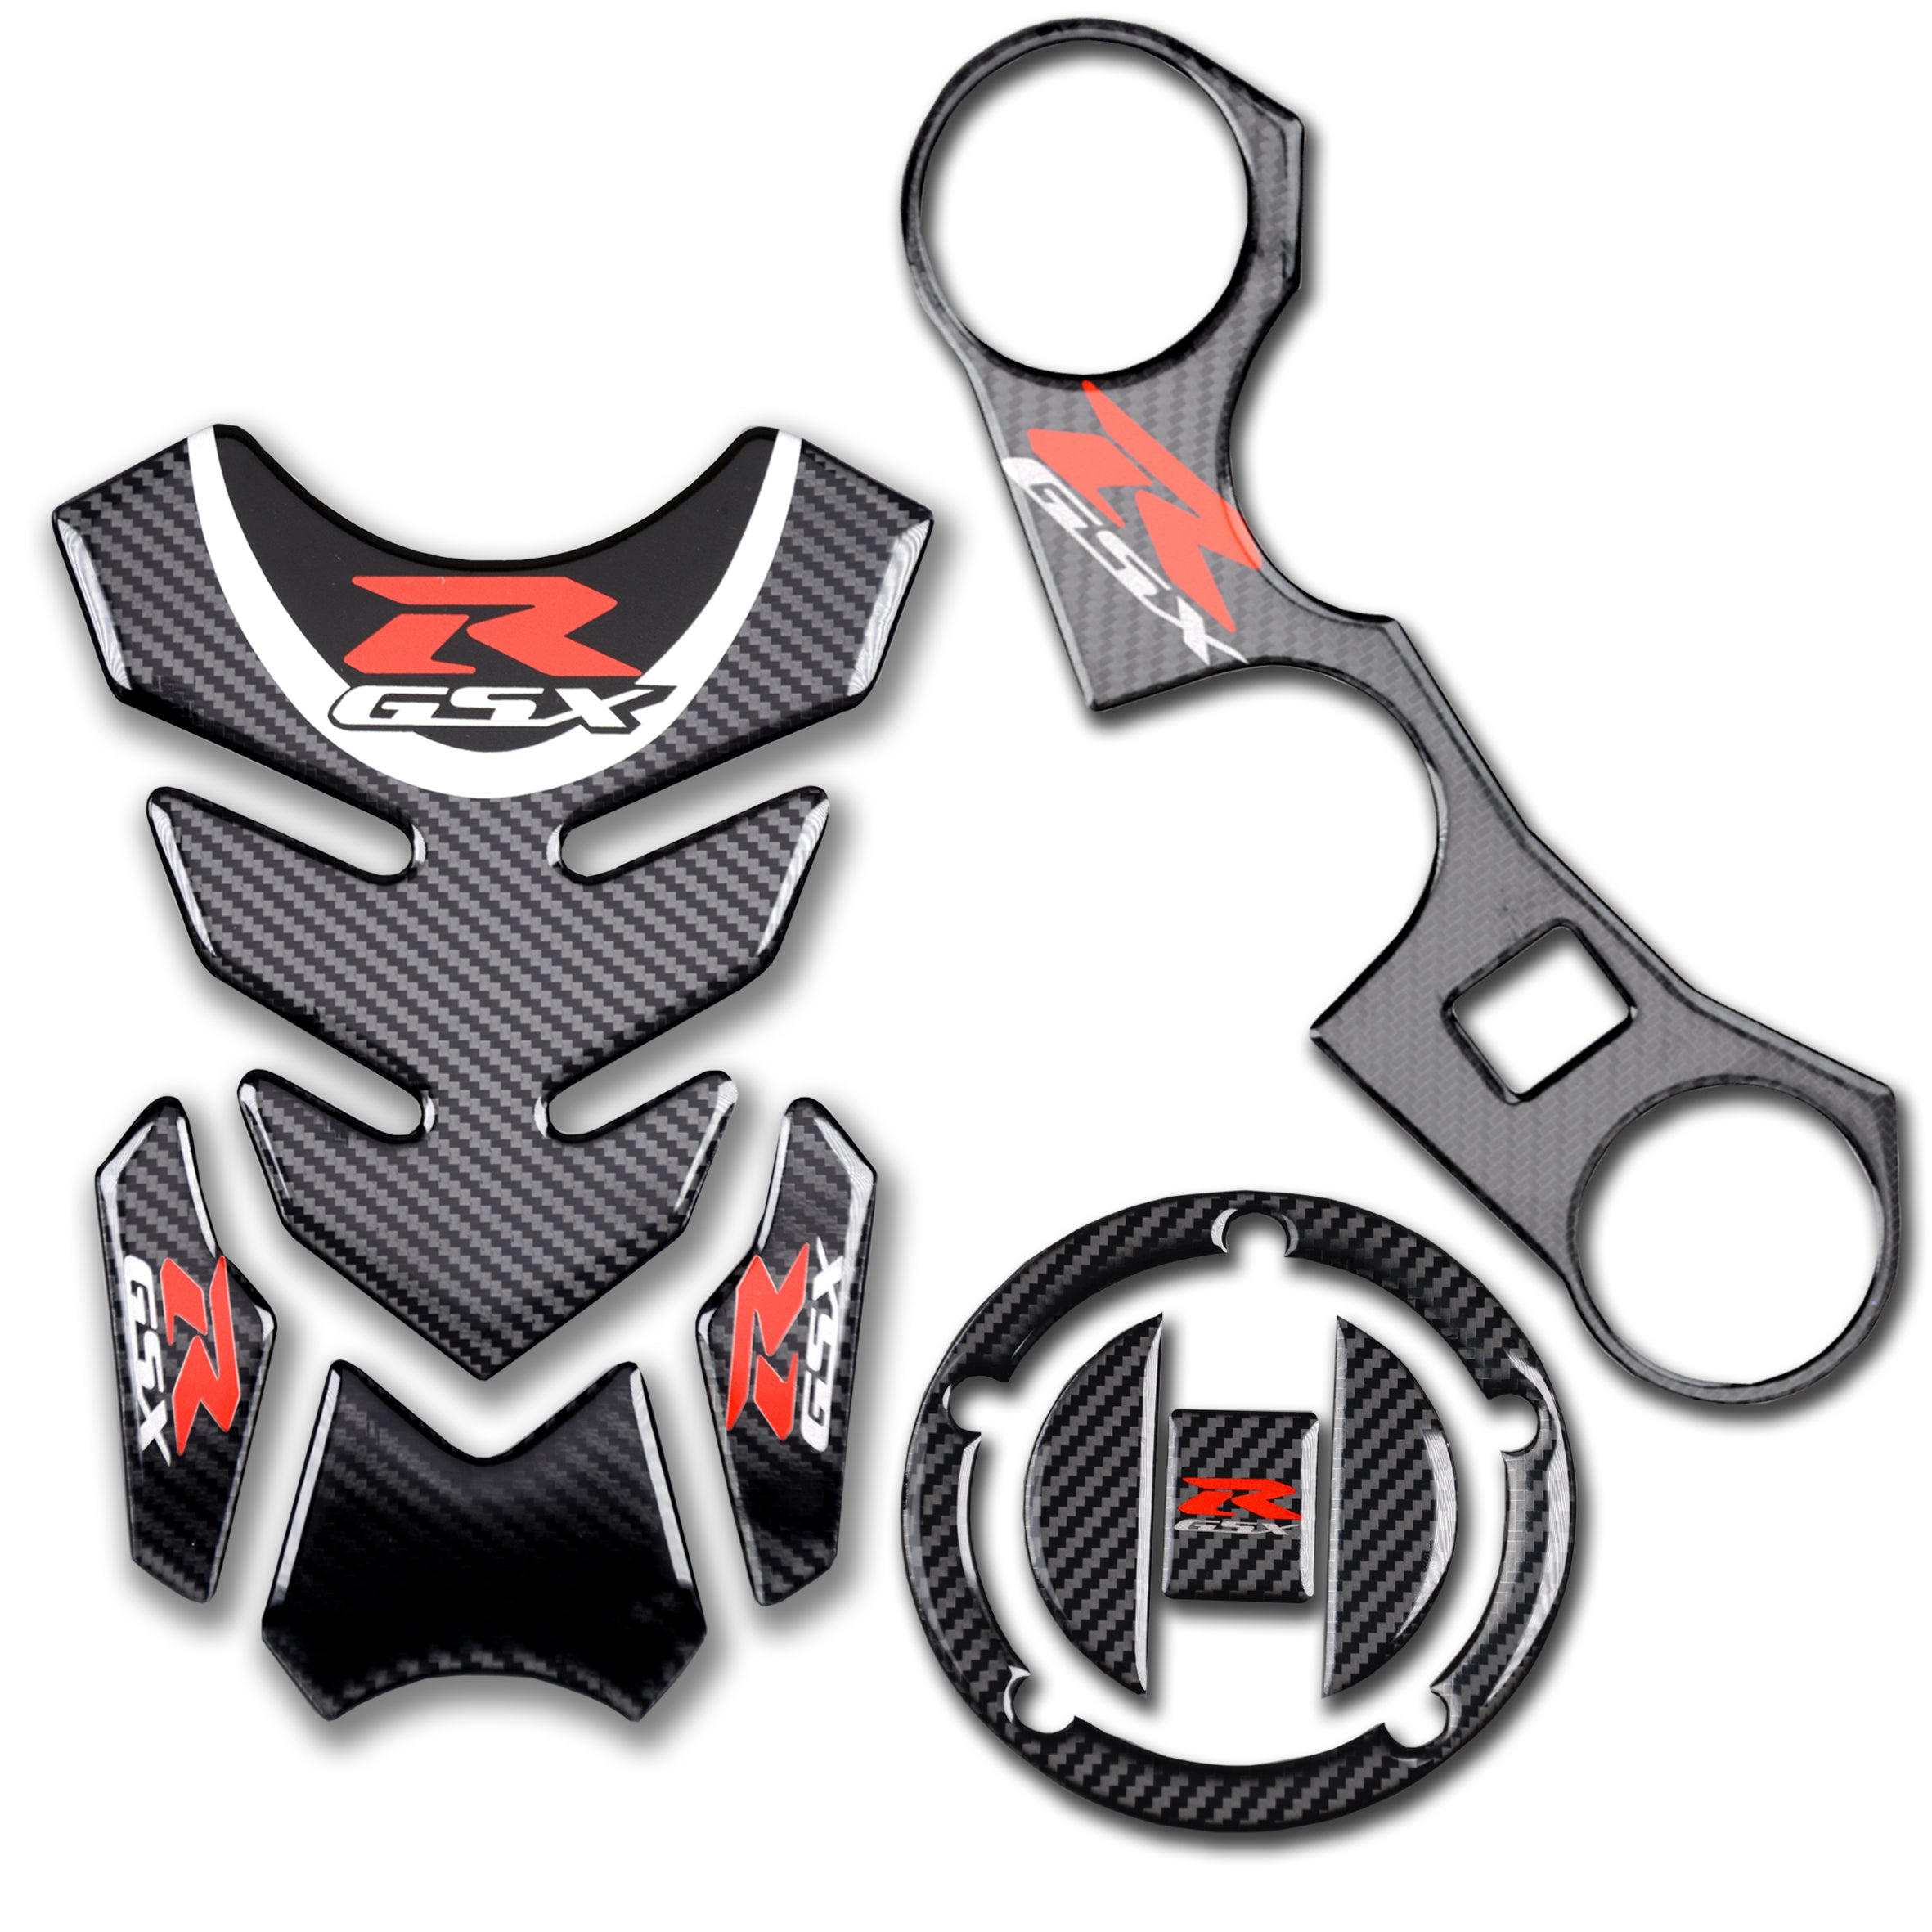 Real Carbon Fibre Gas Cap, Tank Pad,Triple Tree Front End Upper, Top Clamp  Decal Stickers, Tank Pad, Tank Protector for GSXR 600 GSXR 750 GSXR 1000 K6